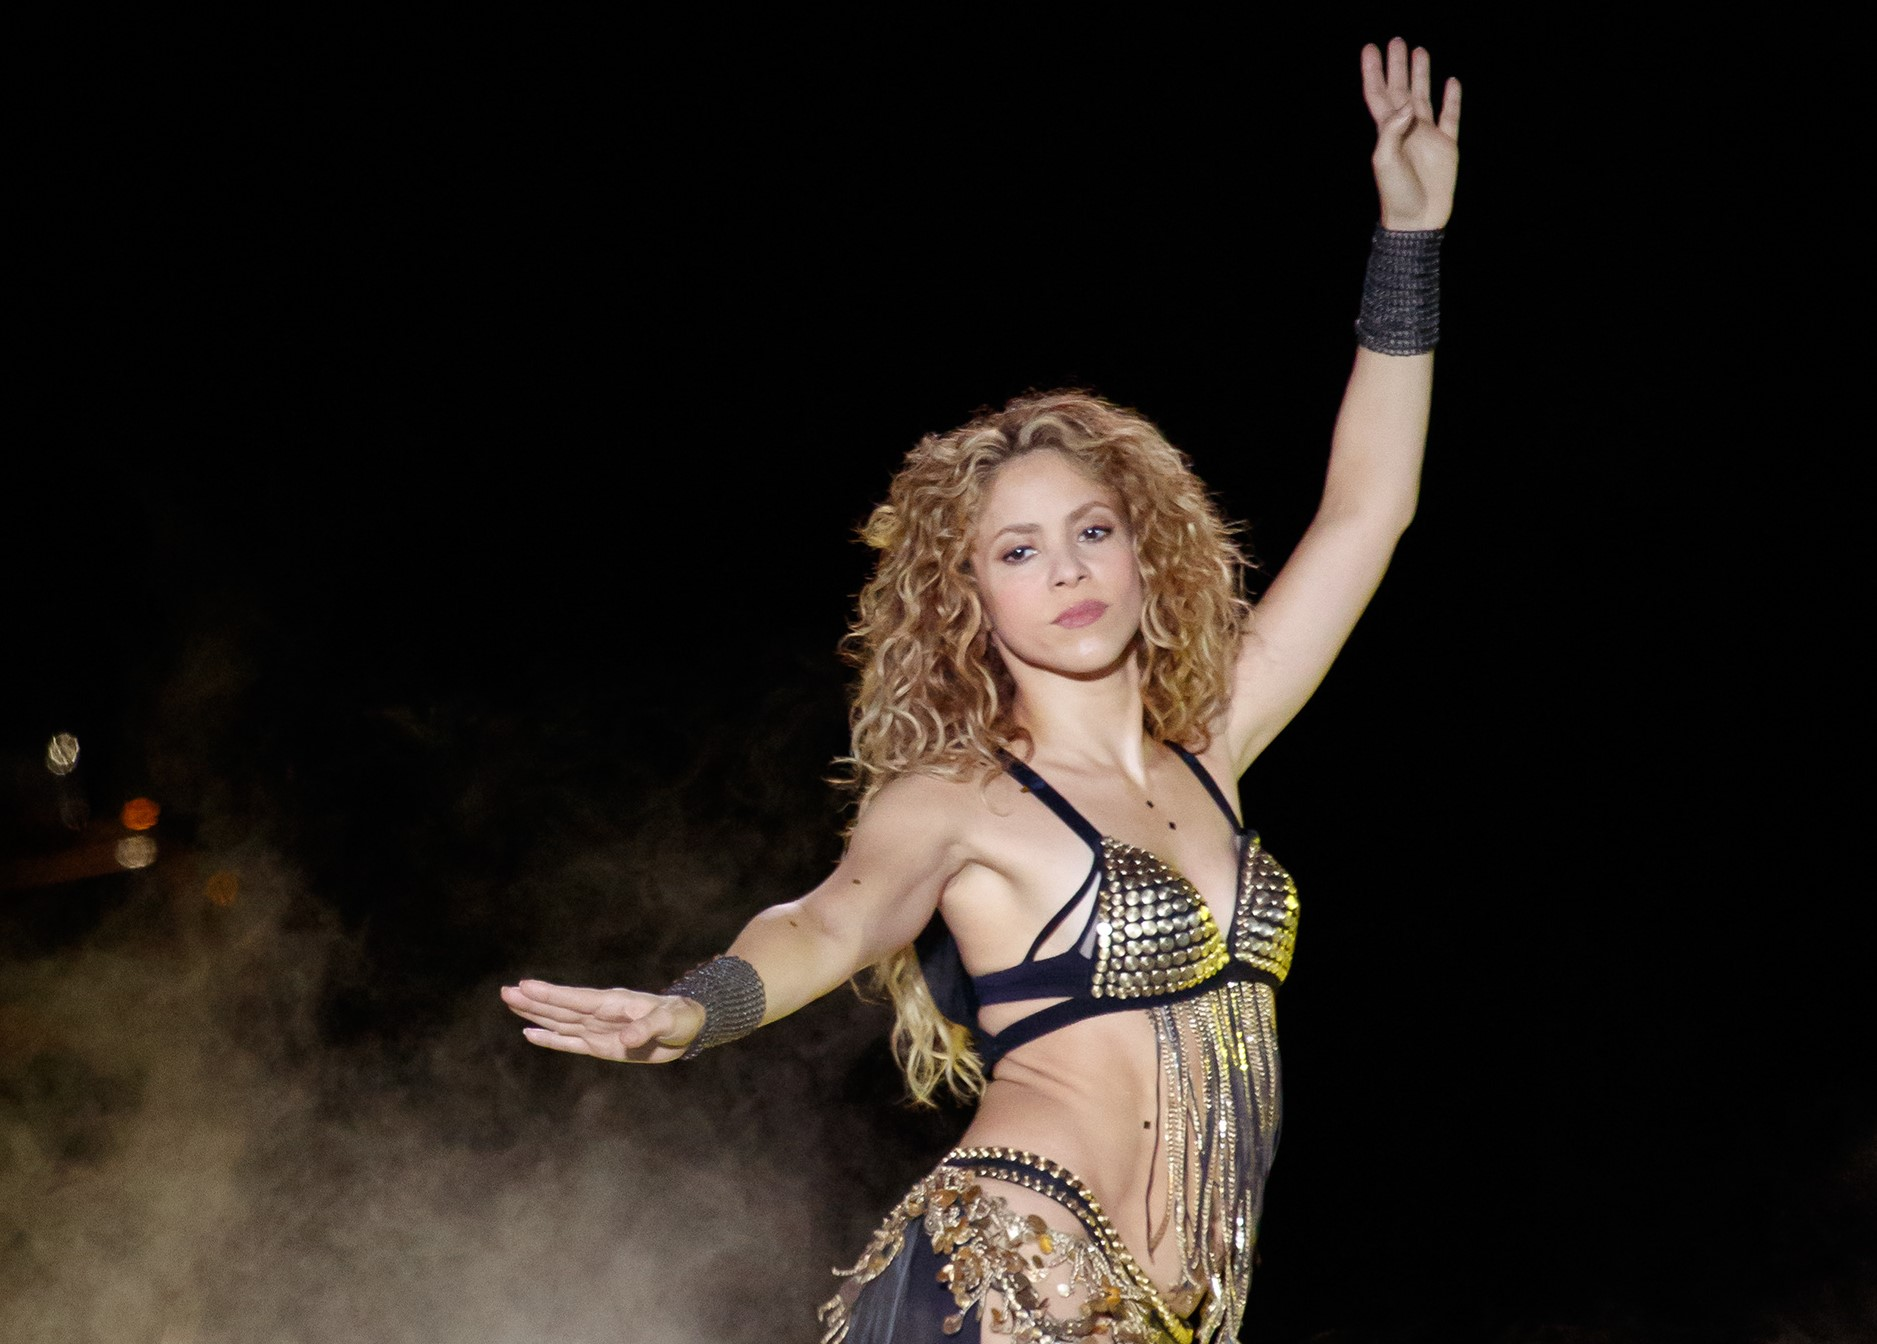 Shakira In Concert: El Dorado World, Shakira 2019, Shakira World Tour 2019,Shakira In Concert: El Dorado World Movie, Shakira In Concert: El Dorado World Documentary